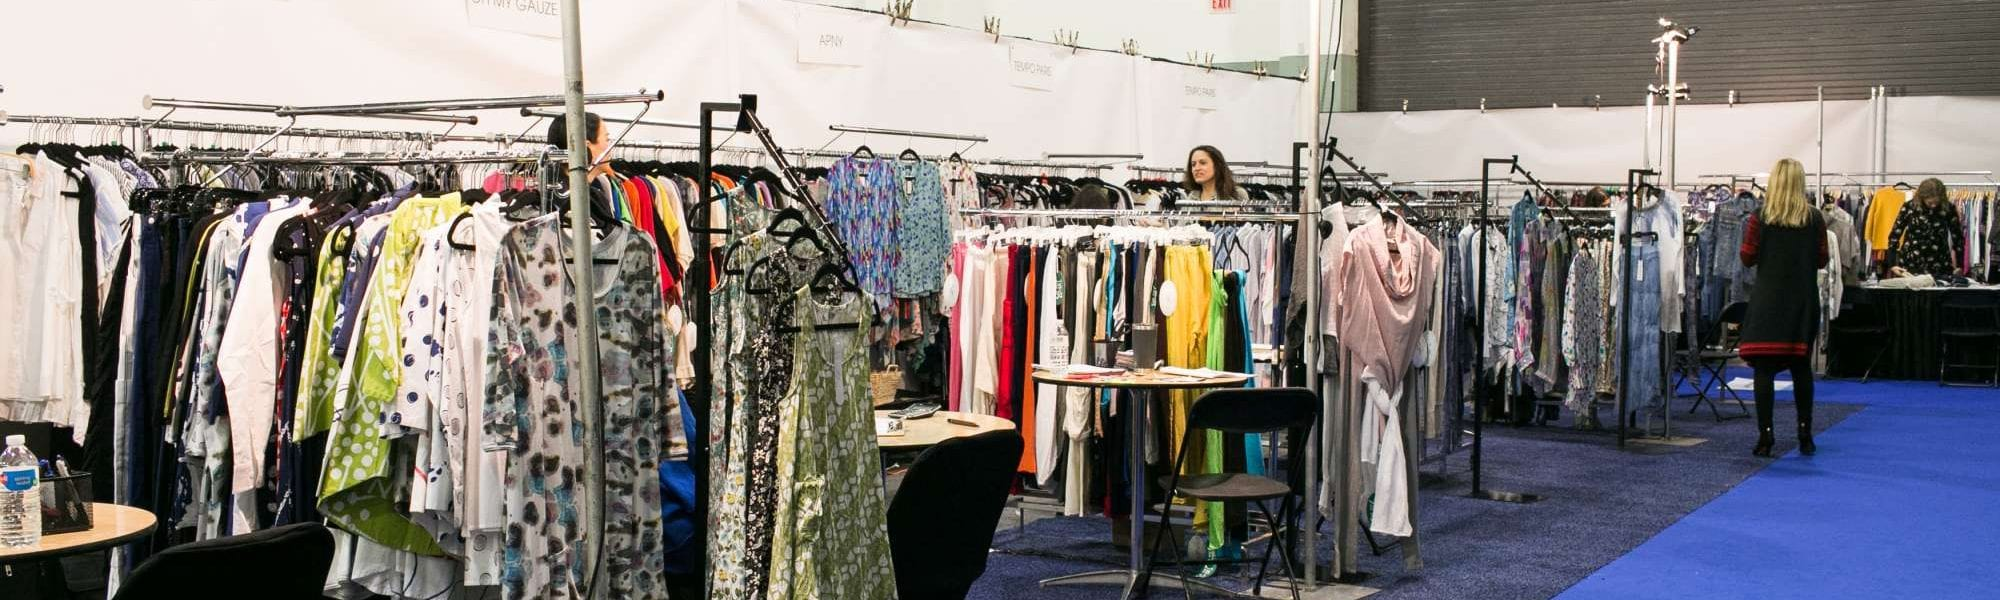 clothing racks set up at a trade show